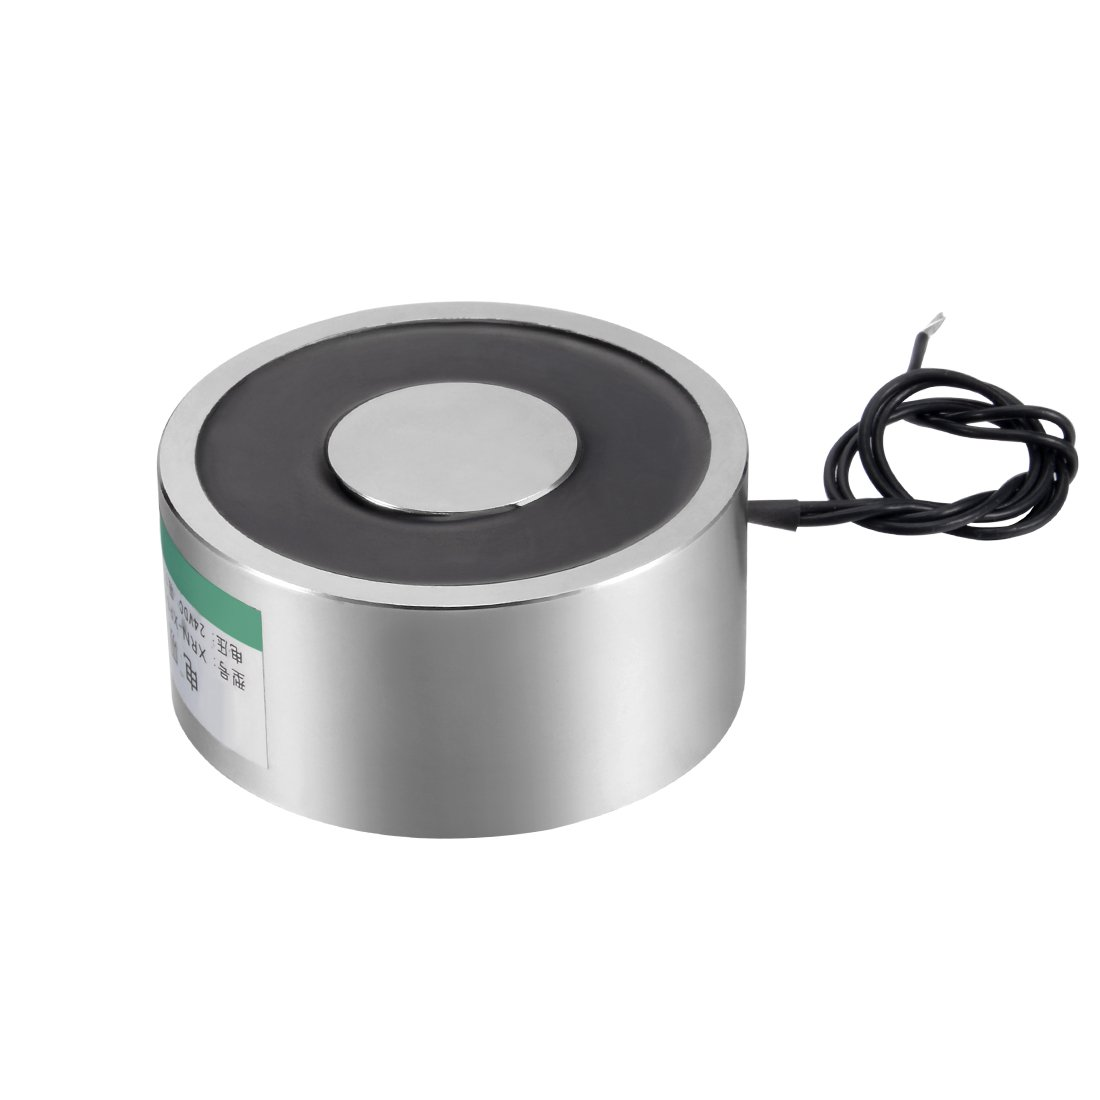 uxcell DC24V 800N Lift Holding Electromagnet Sucking Disc Electric Lifting Magnet Solenoid 65 x 30mm